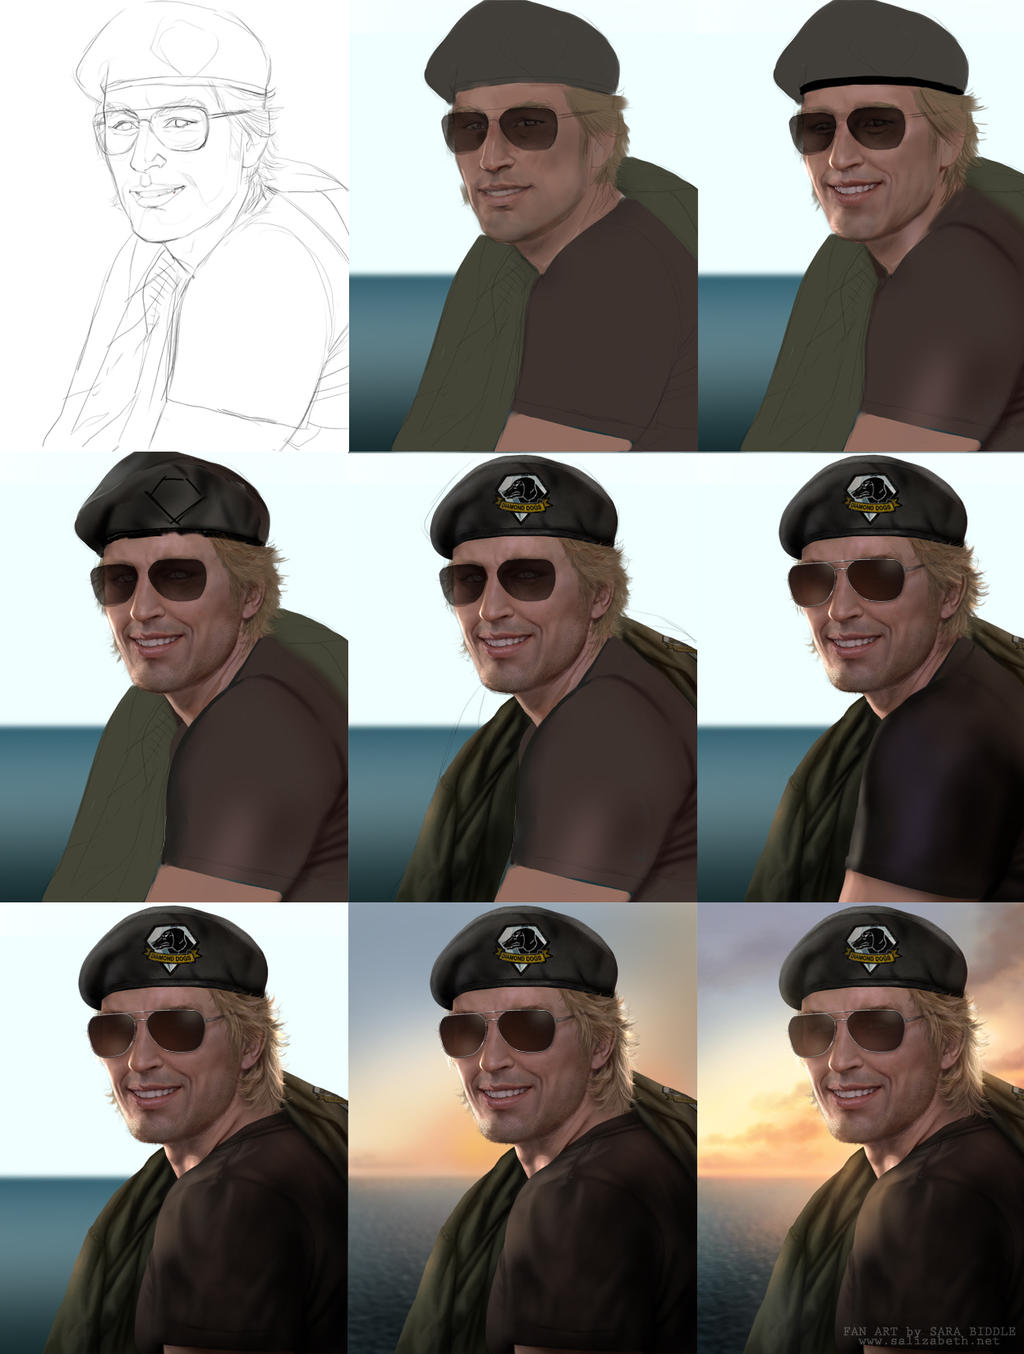 Steps Kazuhira Miller By Mckadesinsanity On Deviantart You're also too lazy to find someone else to do the job. you should consider this for more than half a second, kazuhira miller. the cold metal of a gun was pressed against kaz, this time at his temple. steps kazuhira miller by